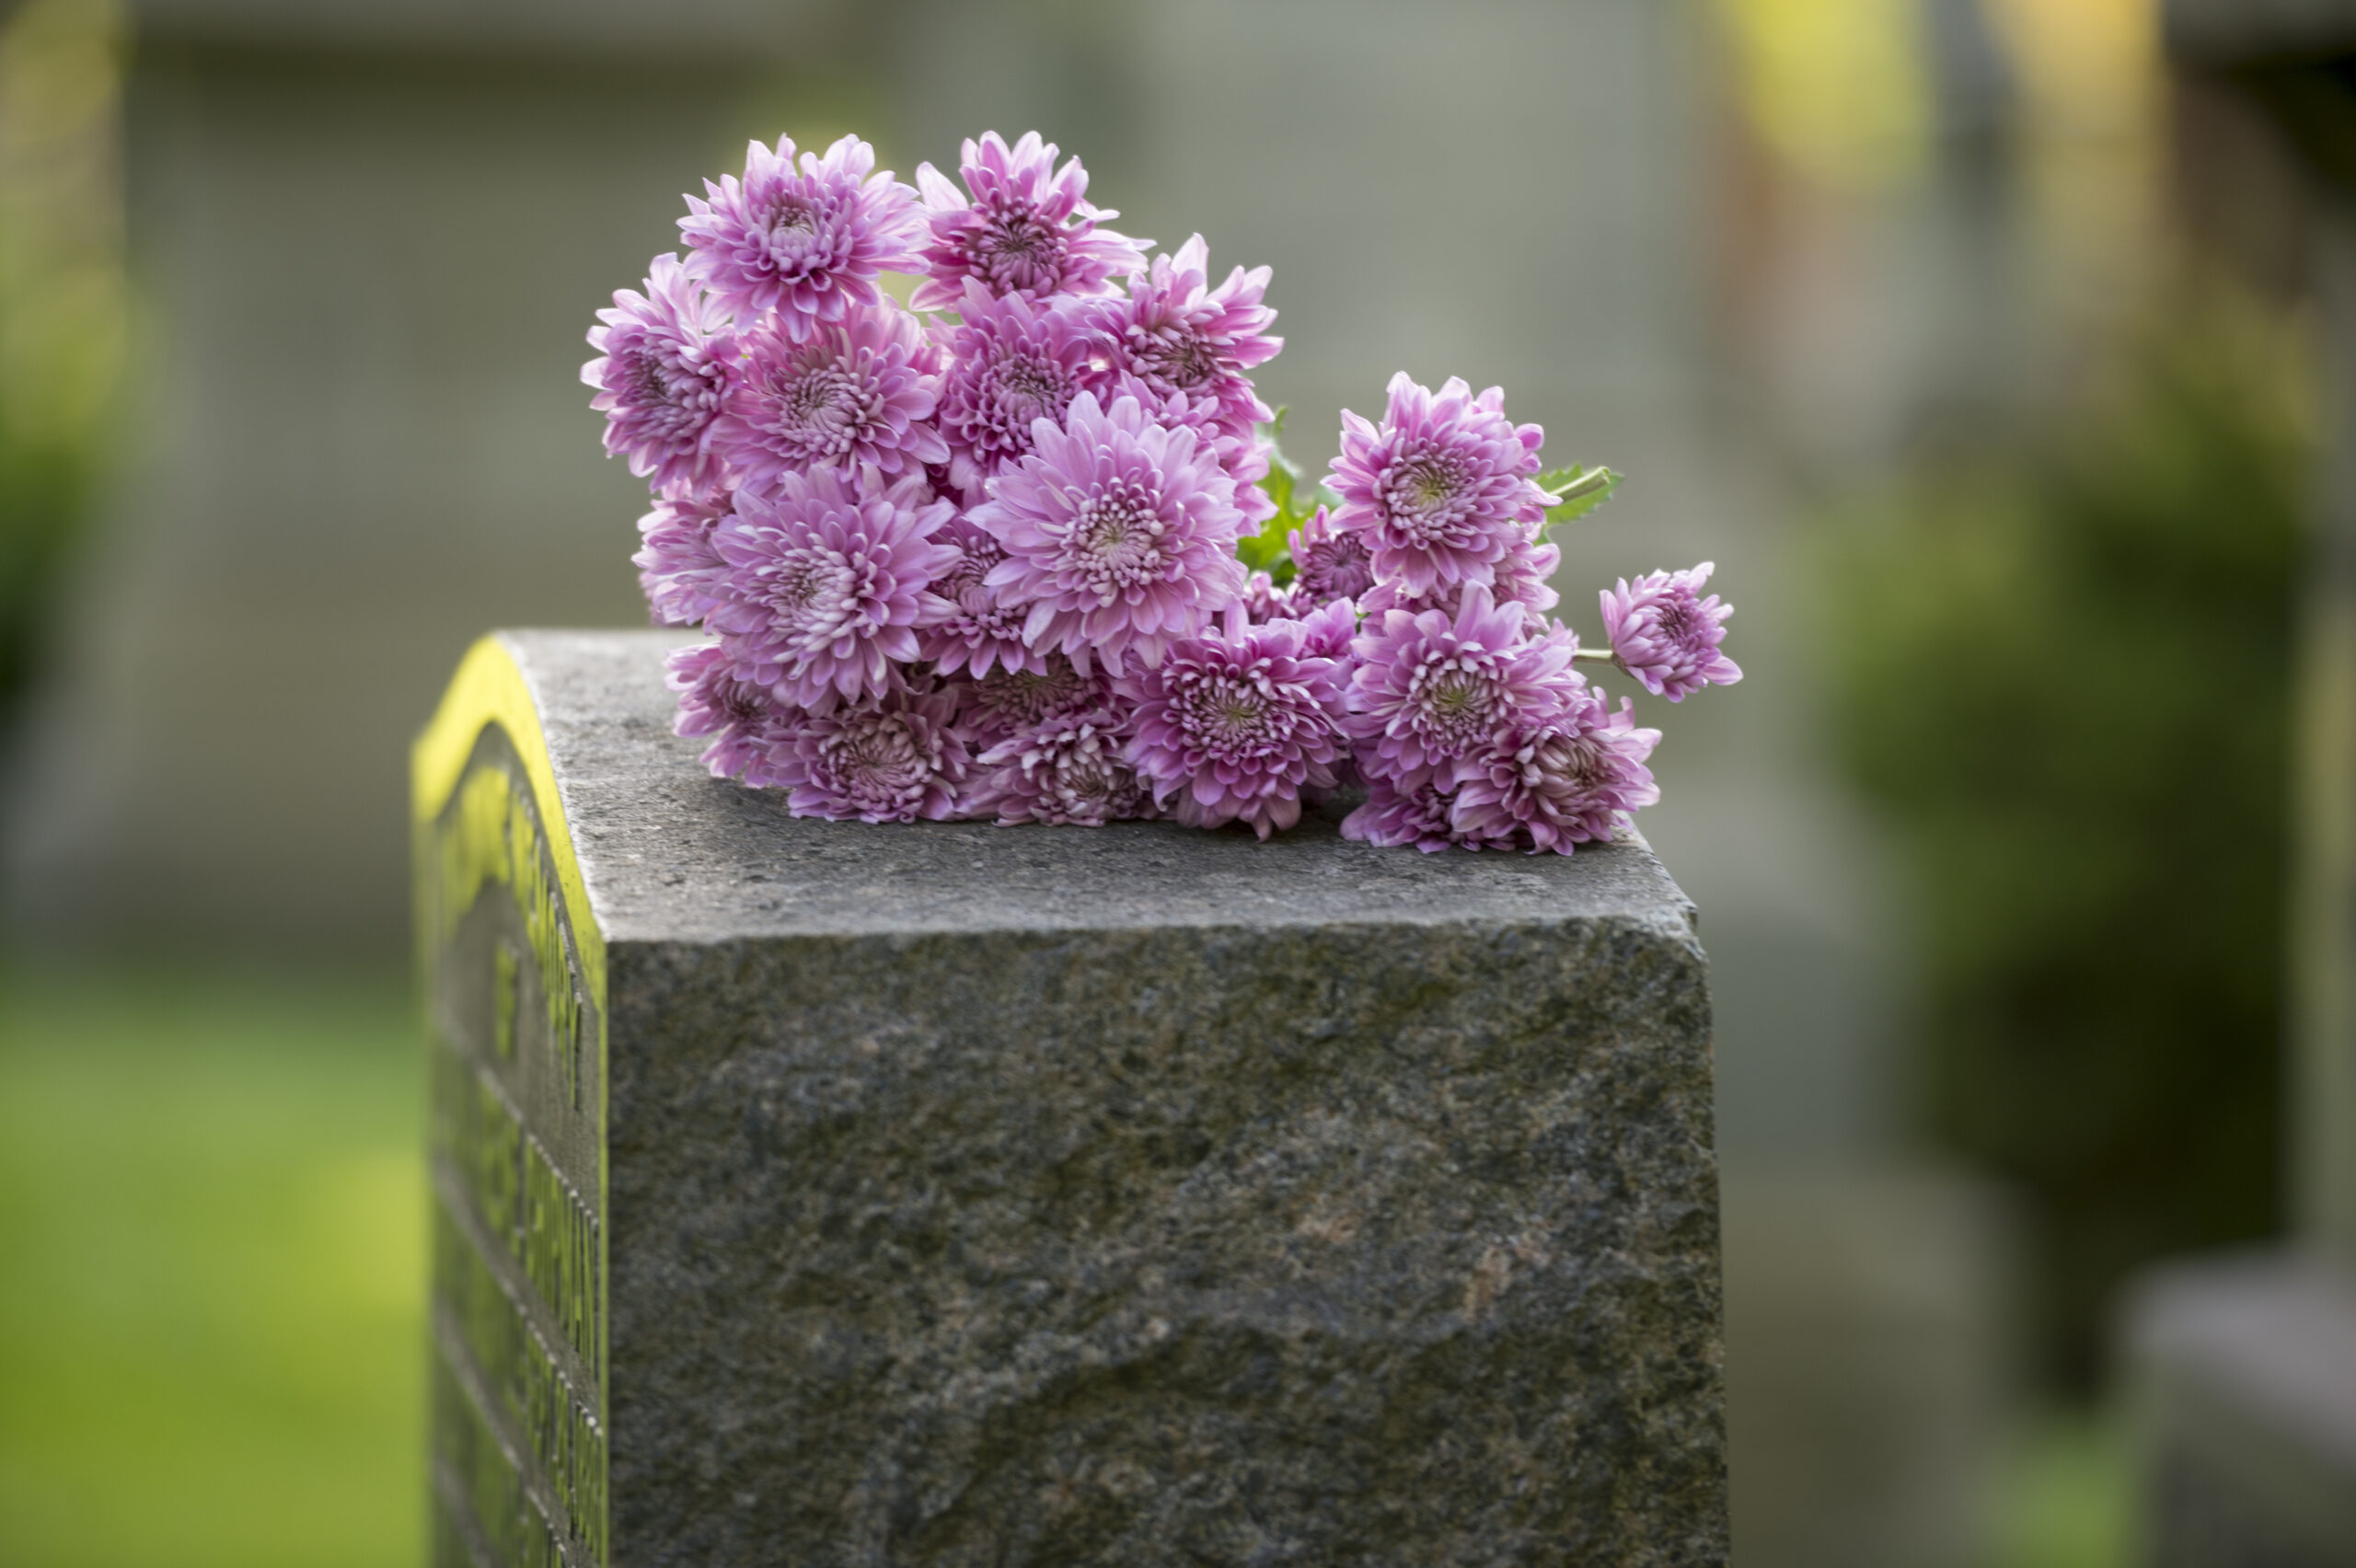 Photo of a grave stone with purple flowers on top